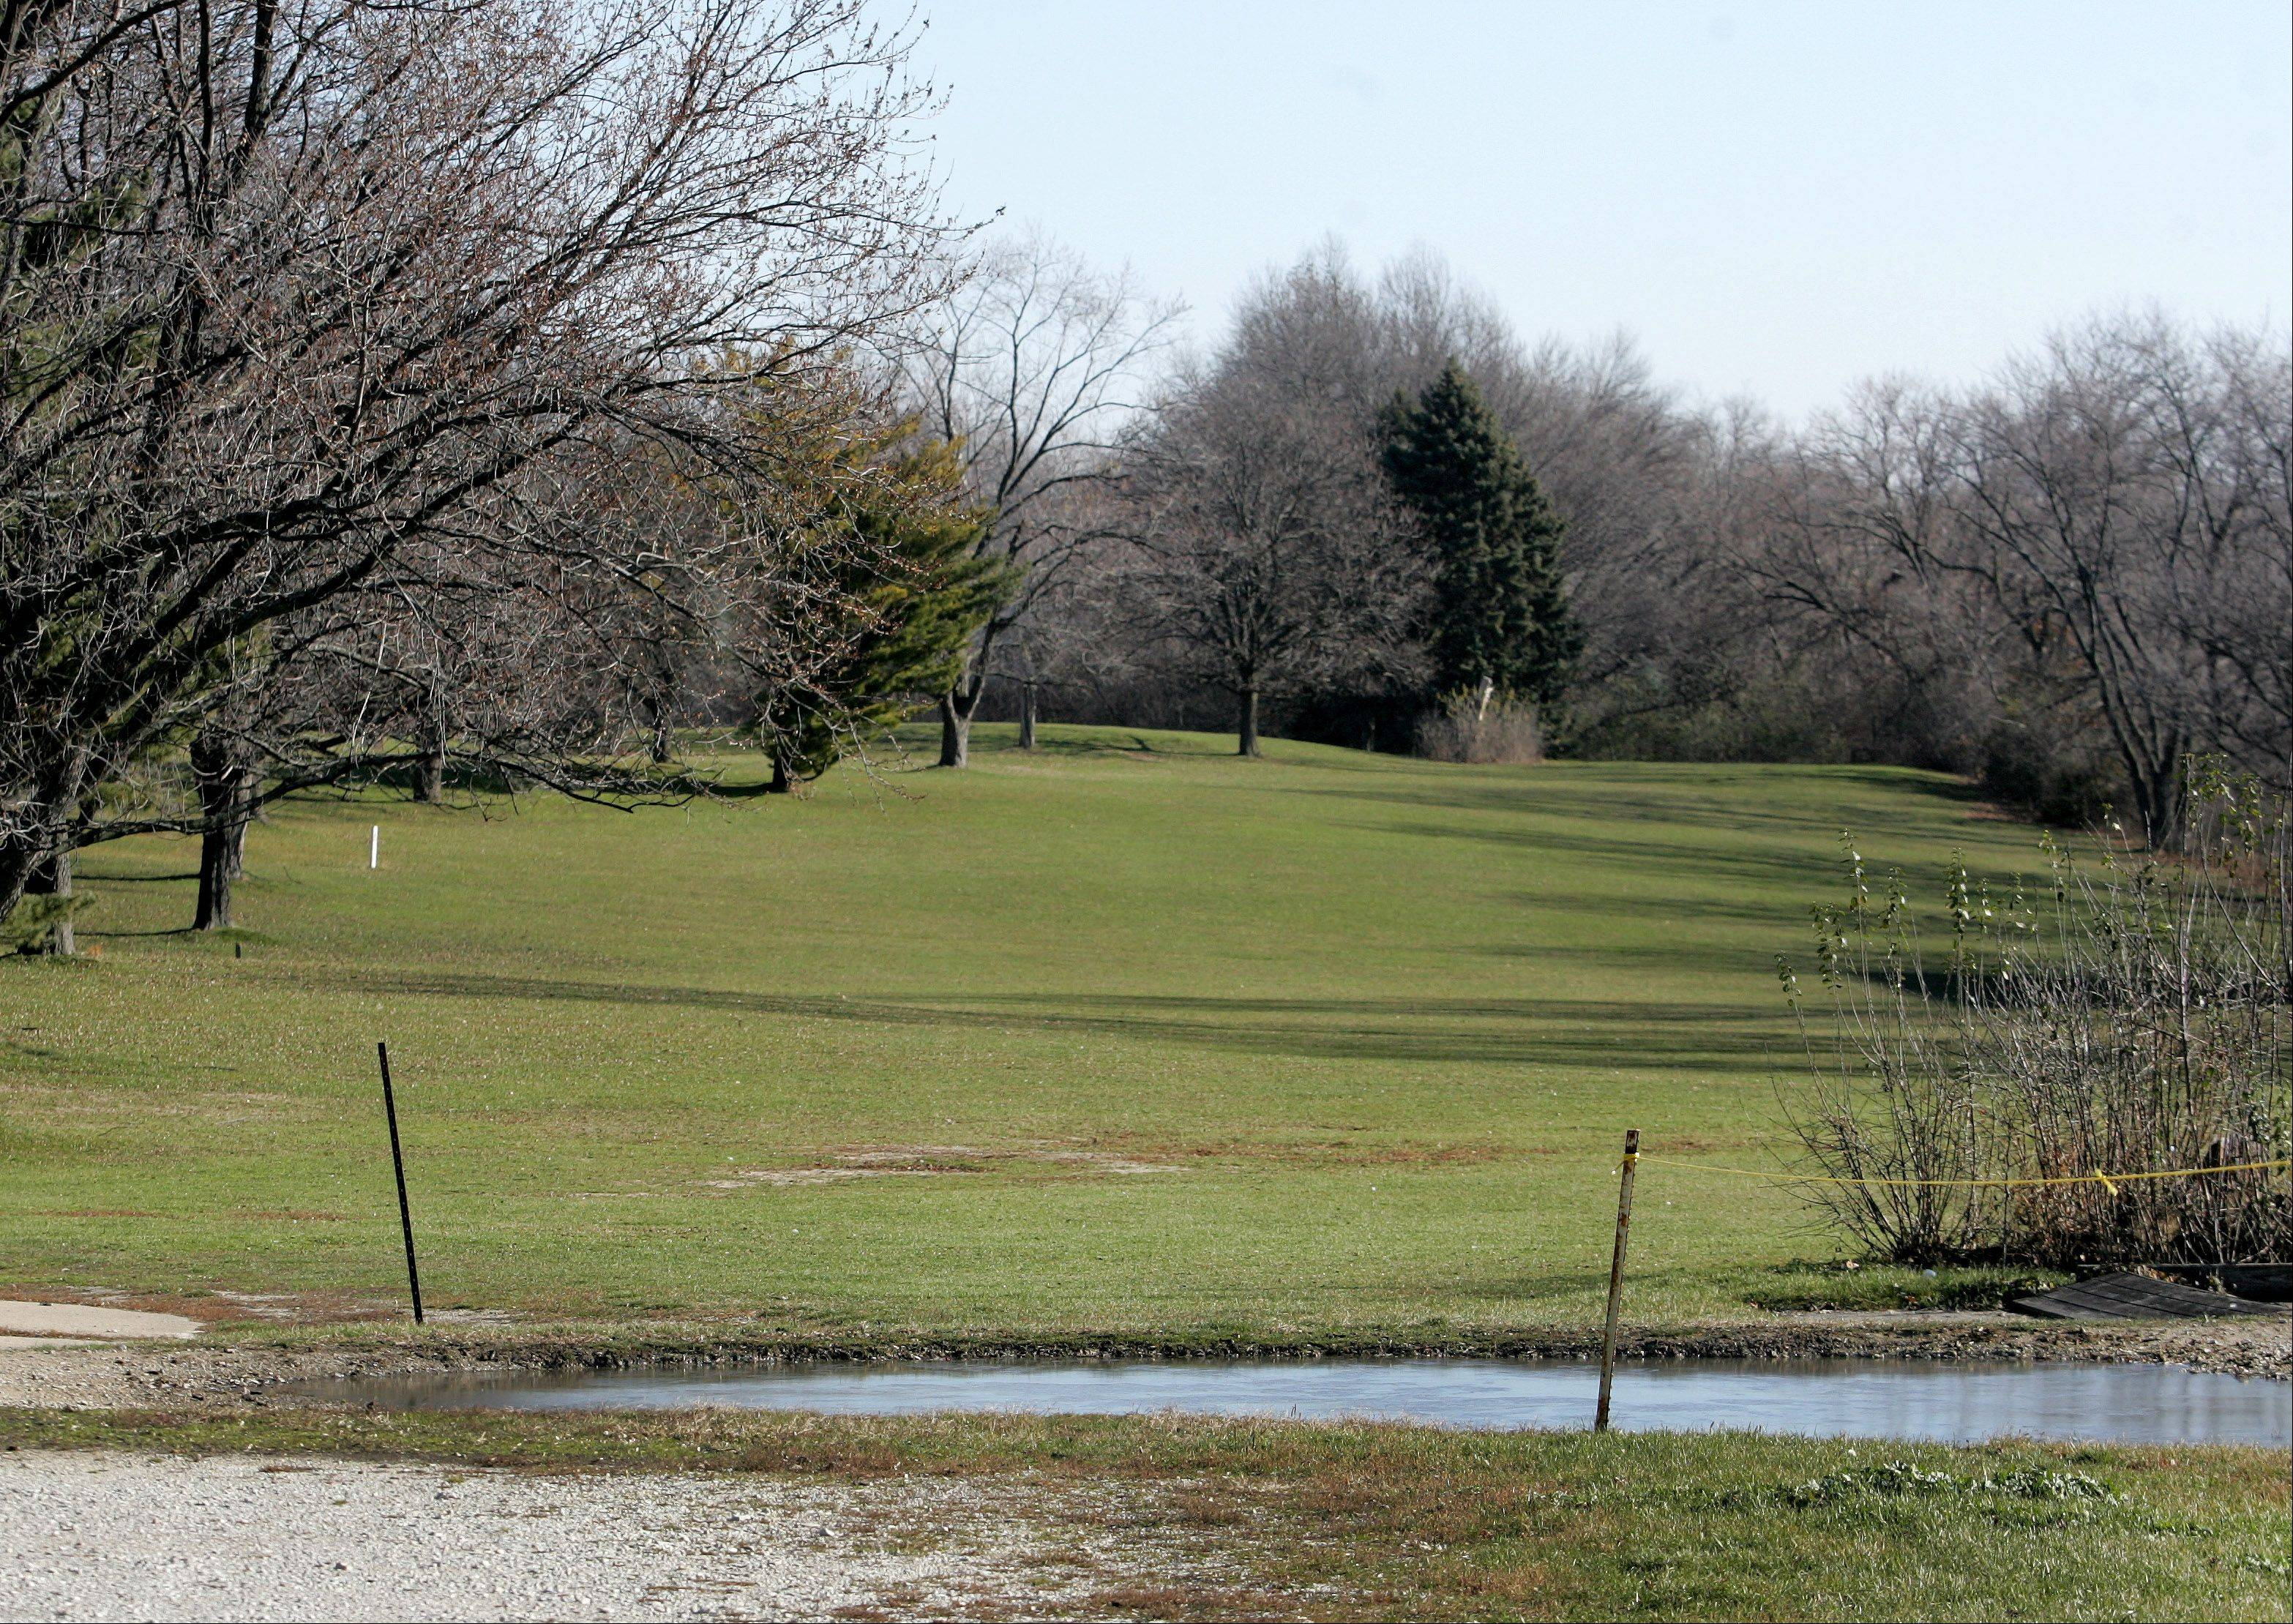 A would-be developer says Lombard doesn't appear interested in annexing the Ken-Loch Golf Links to allow his company to build apartments and townhouses there.